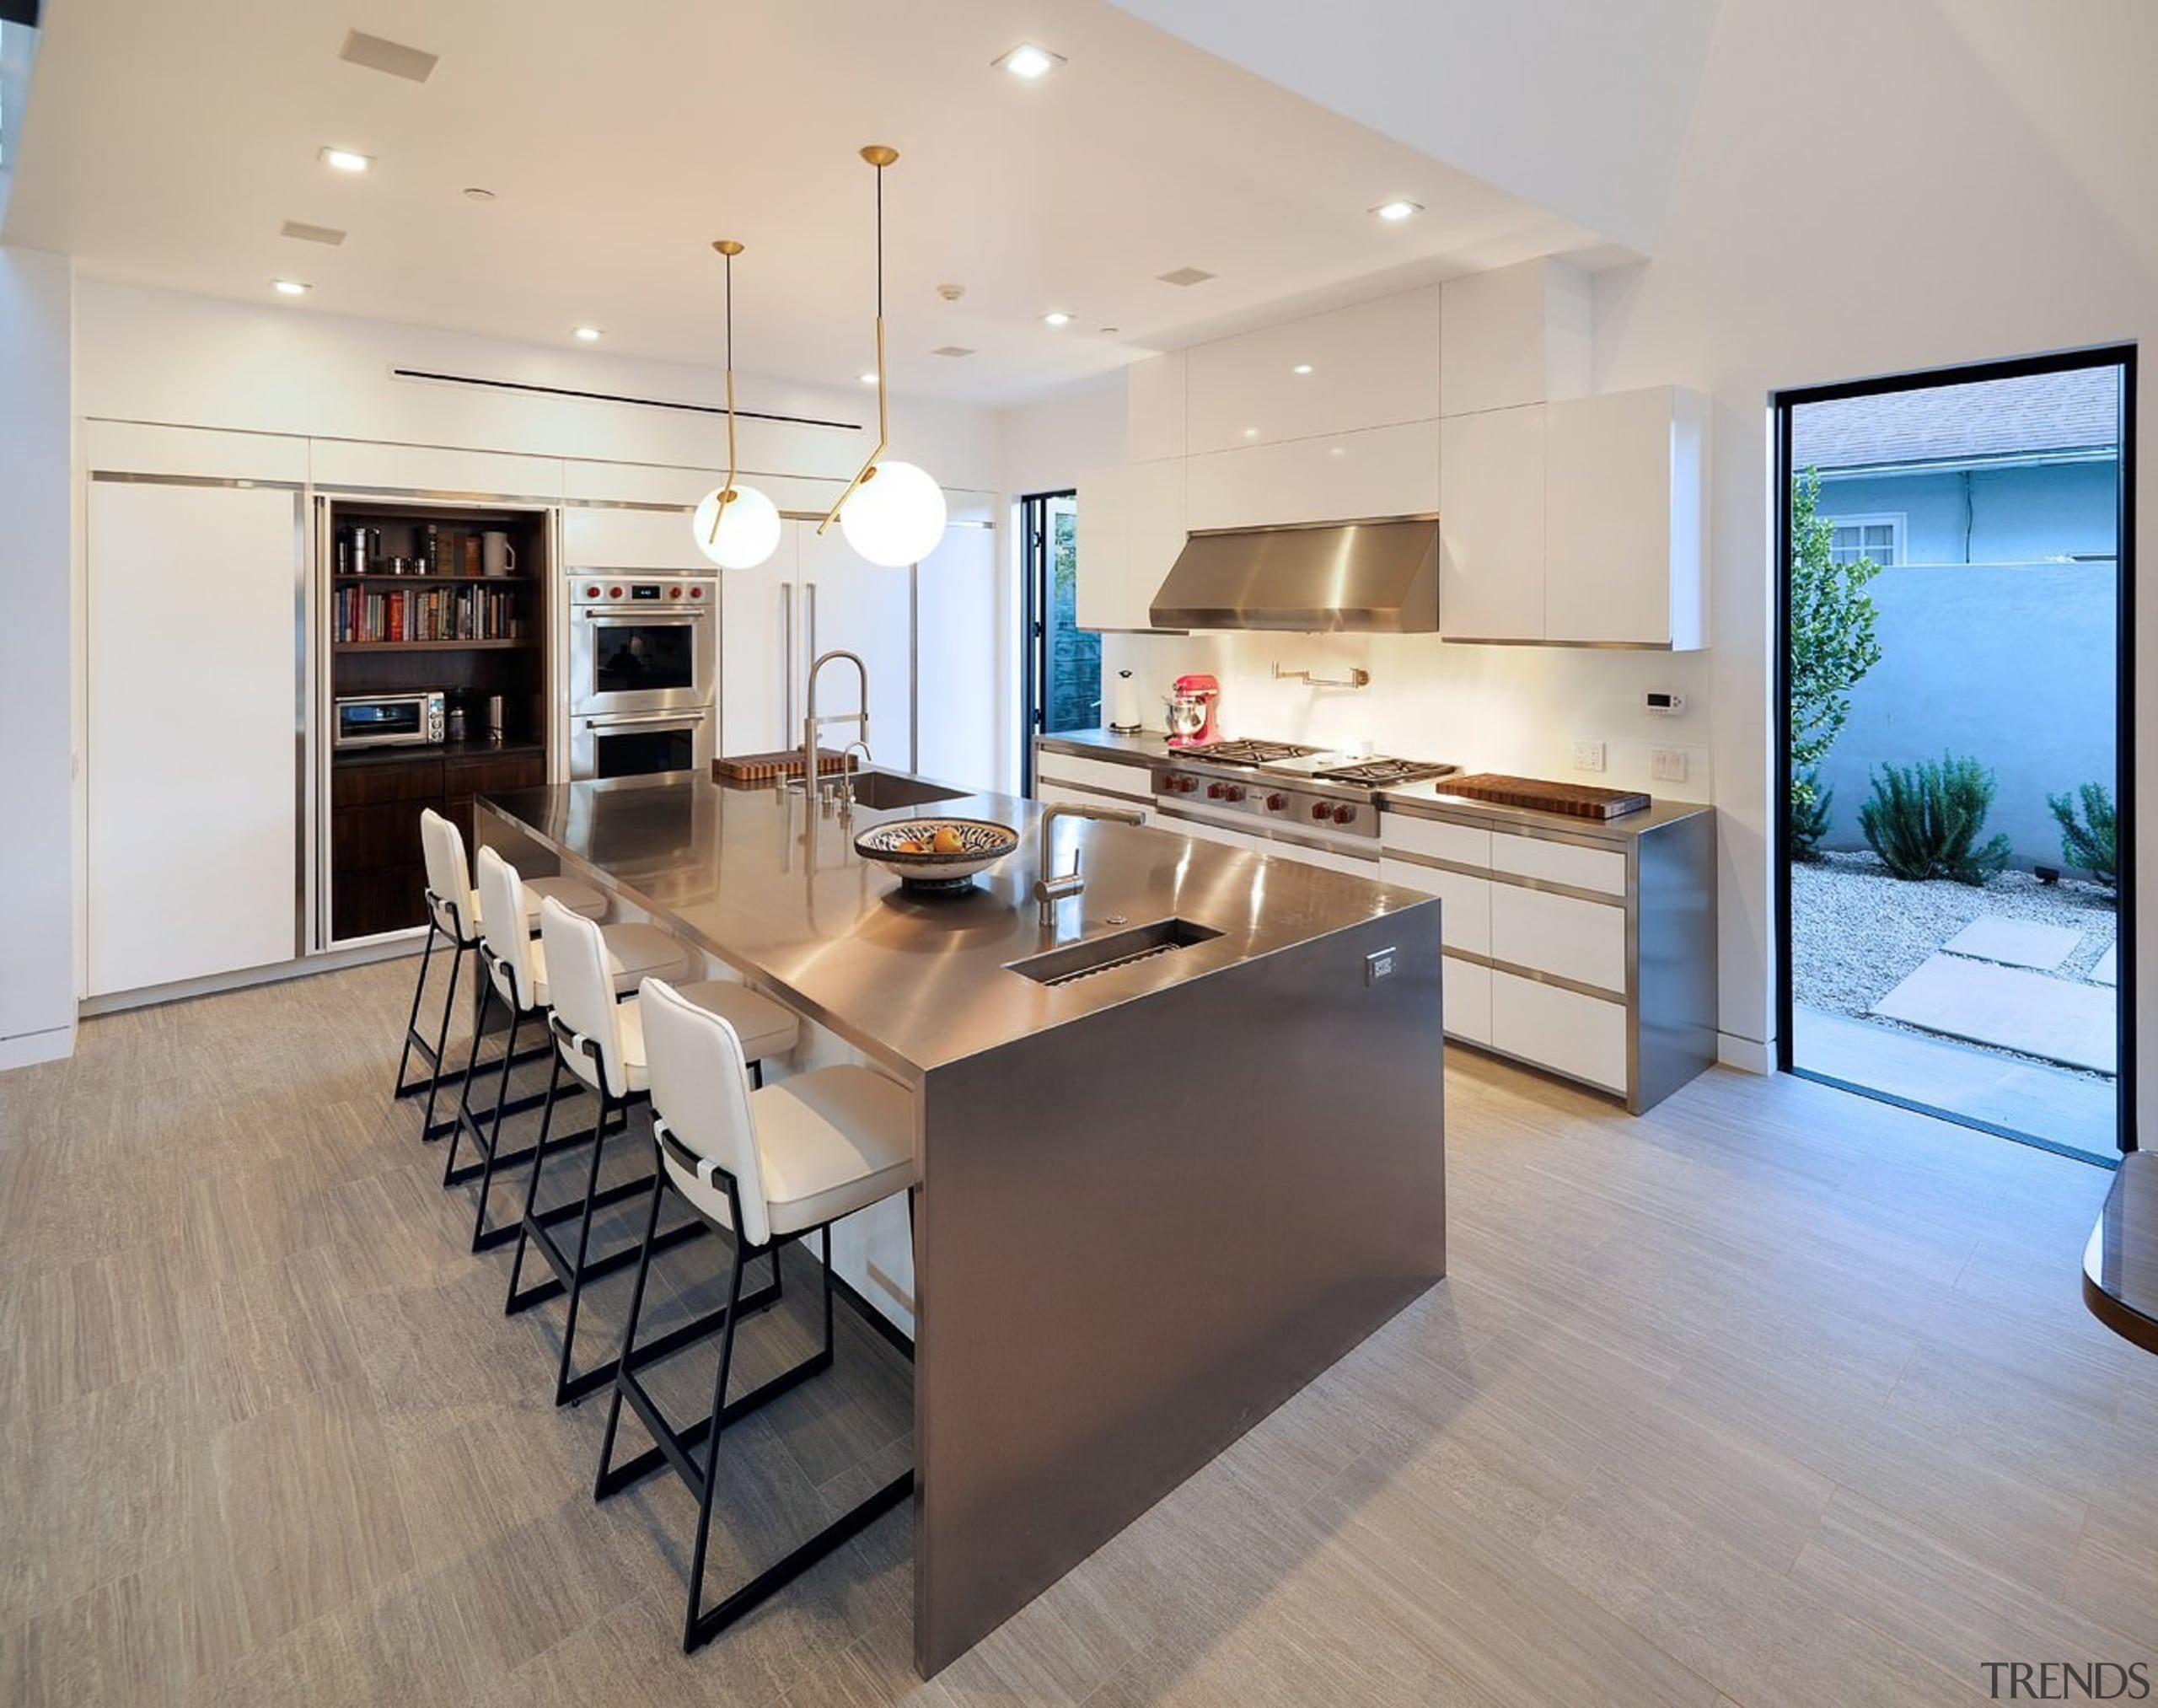 The island, with pendant lighting, is certainly the countertop, floor, flooring, interior design, kitchen, real estate, room, wood flooring, gray